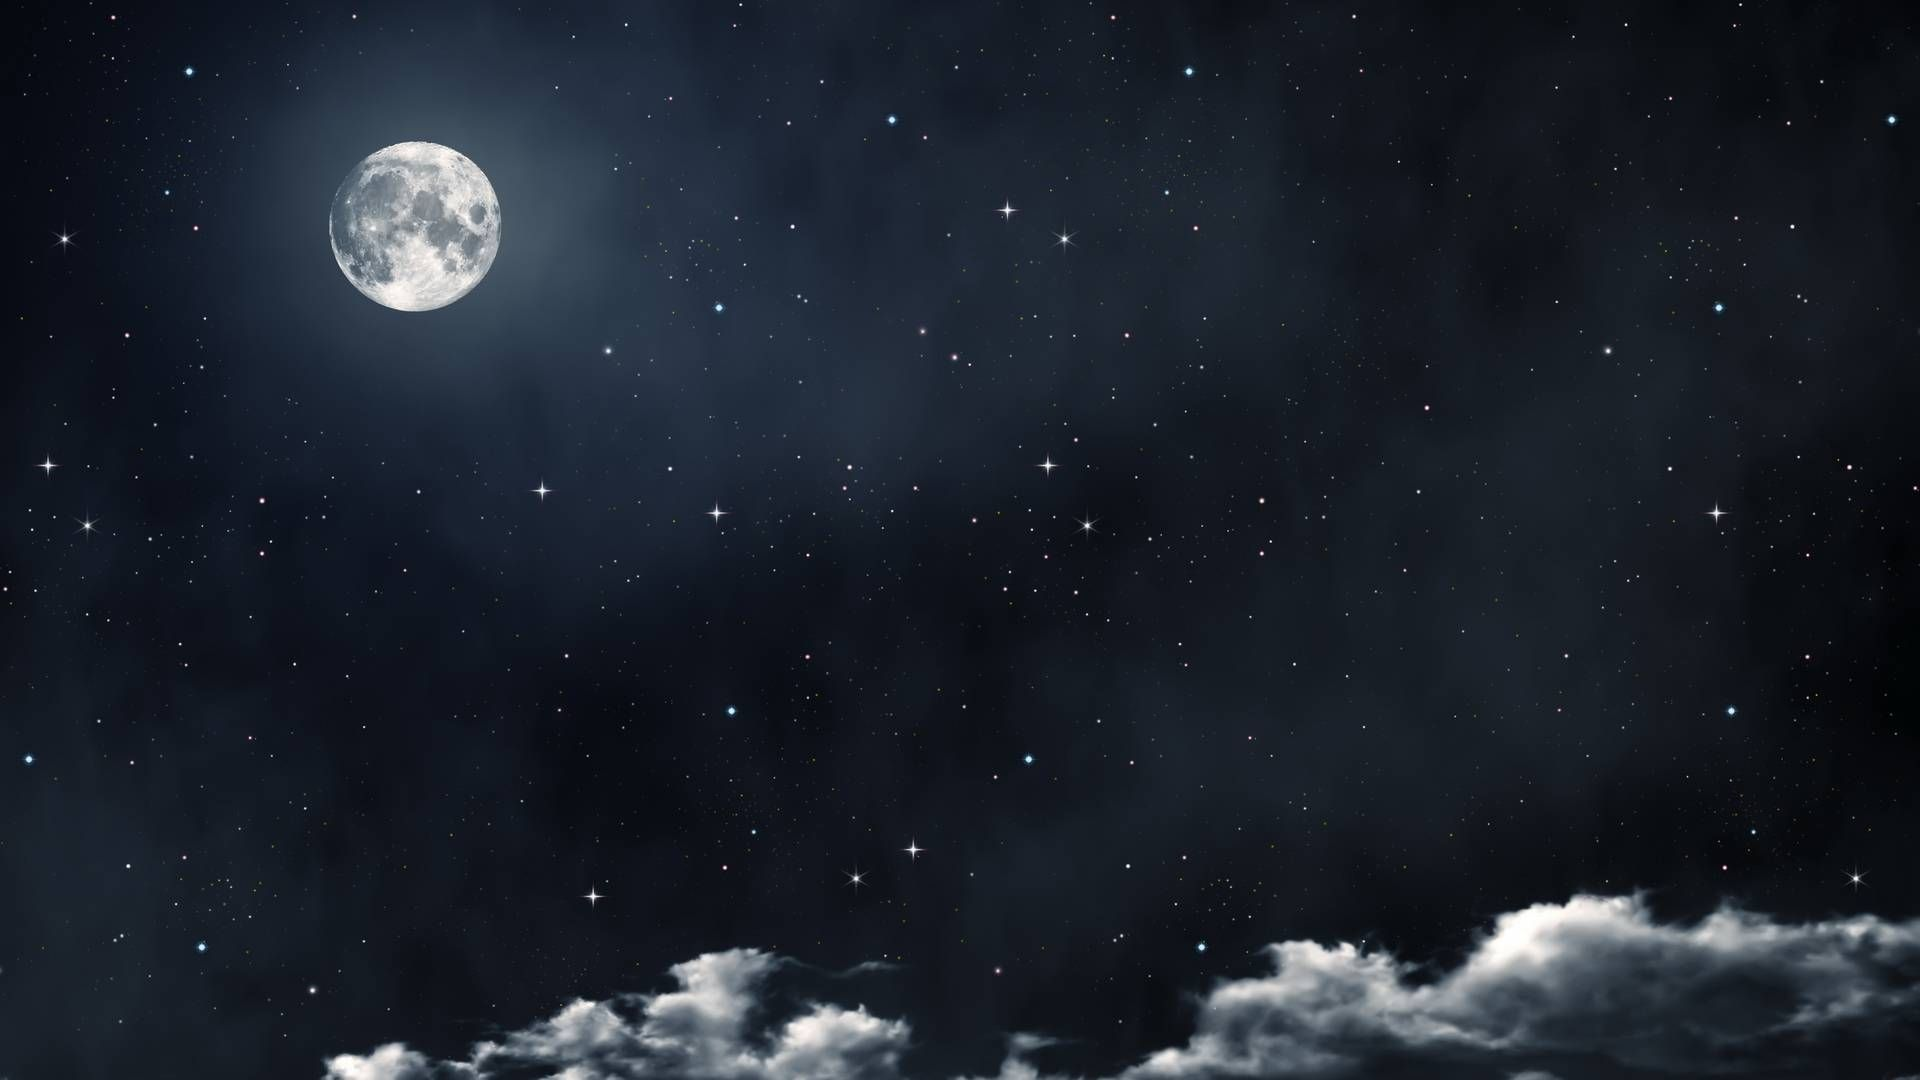 Moon And Stars Space Cool Fun Moon And Stars Wallpaper Night Sky Moon Night Sky Wallpaper